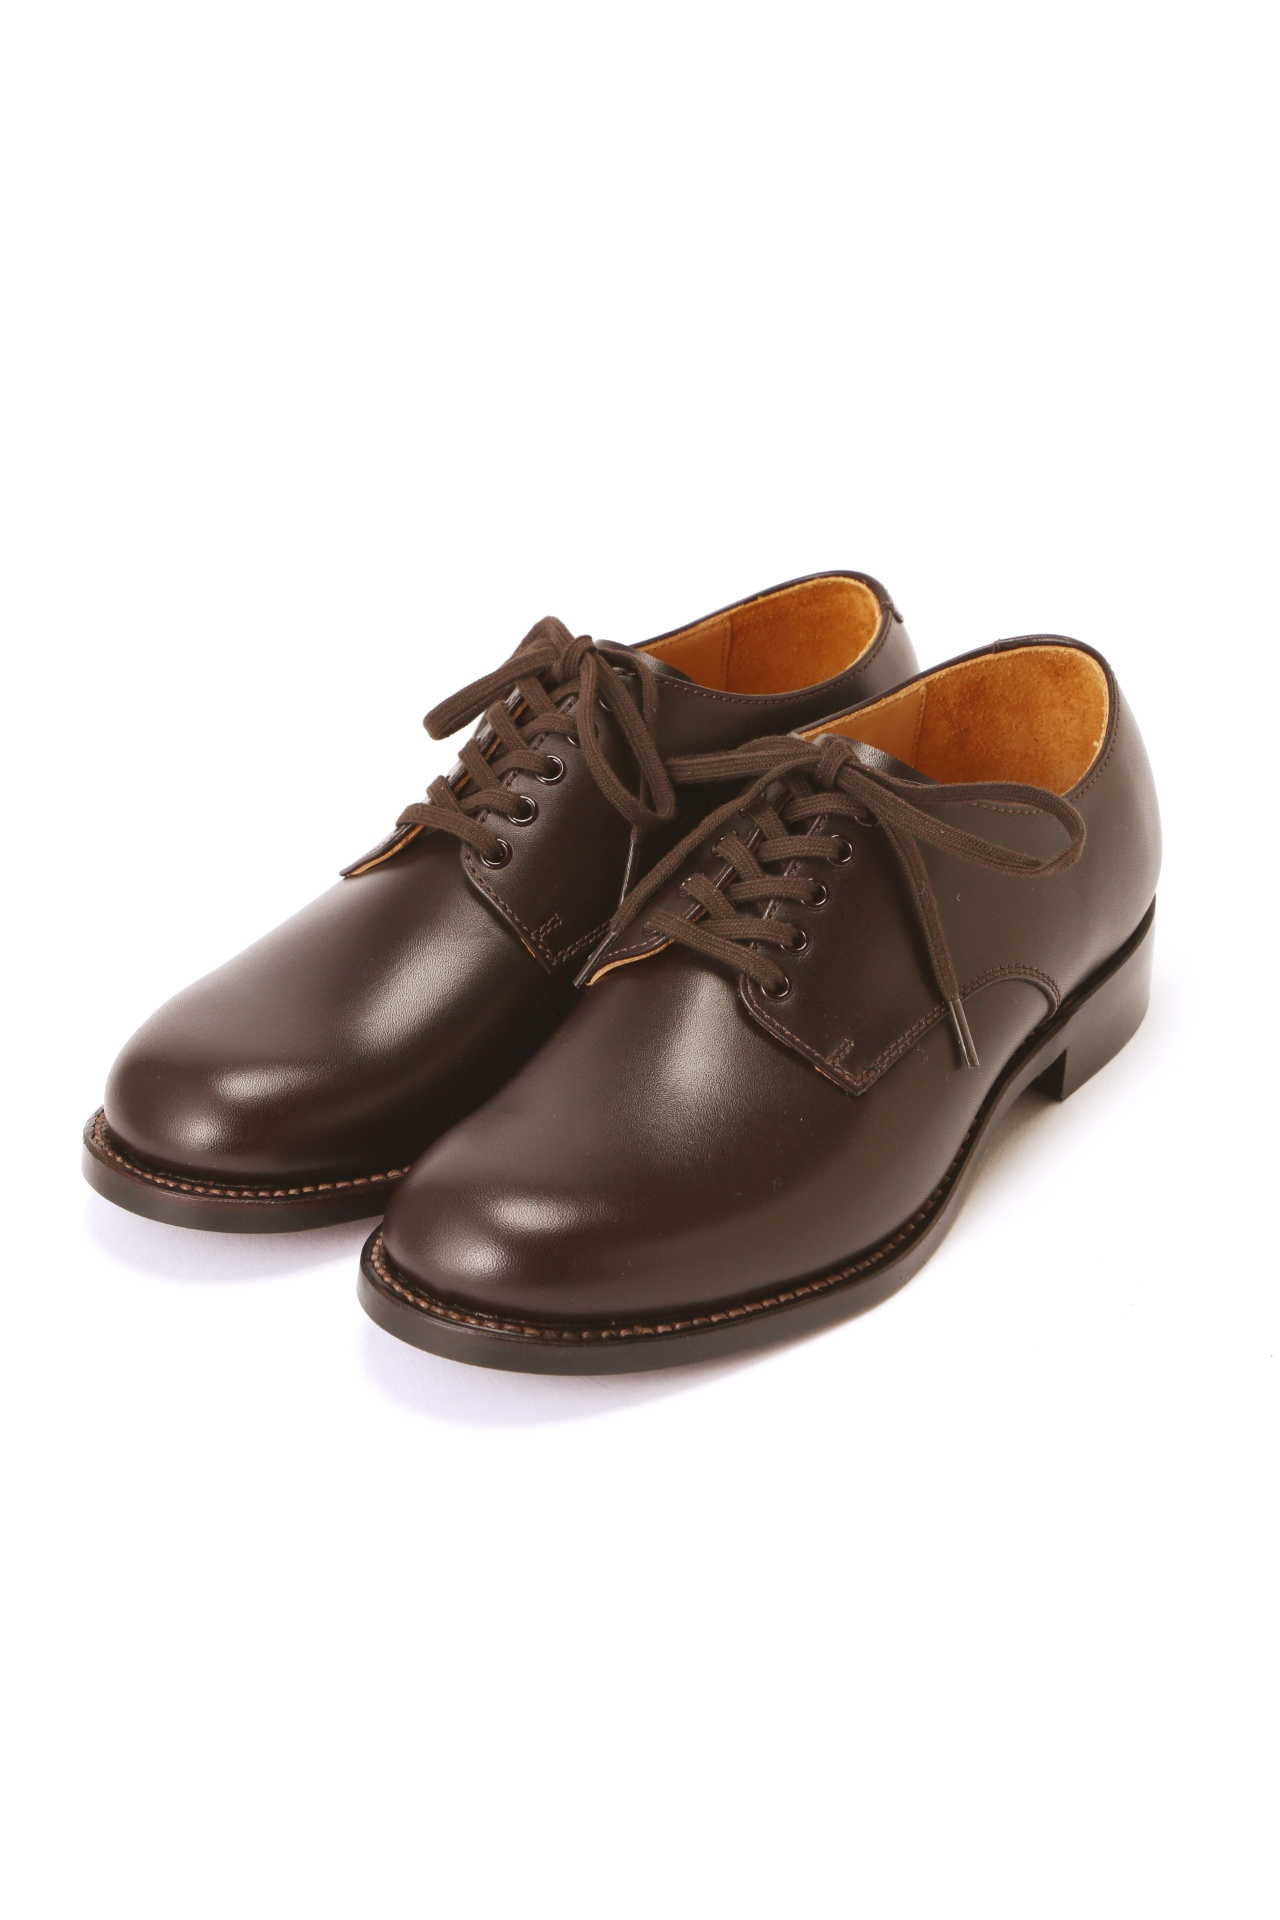 LEATHER LACE UP SHOES7